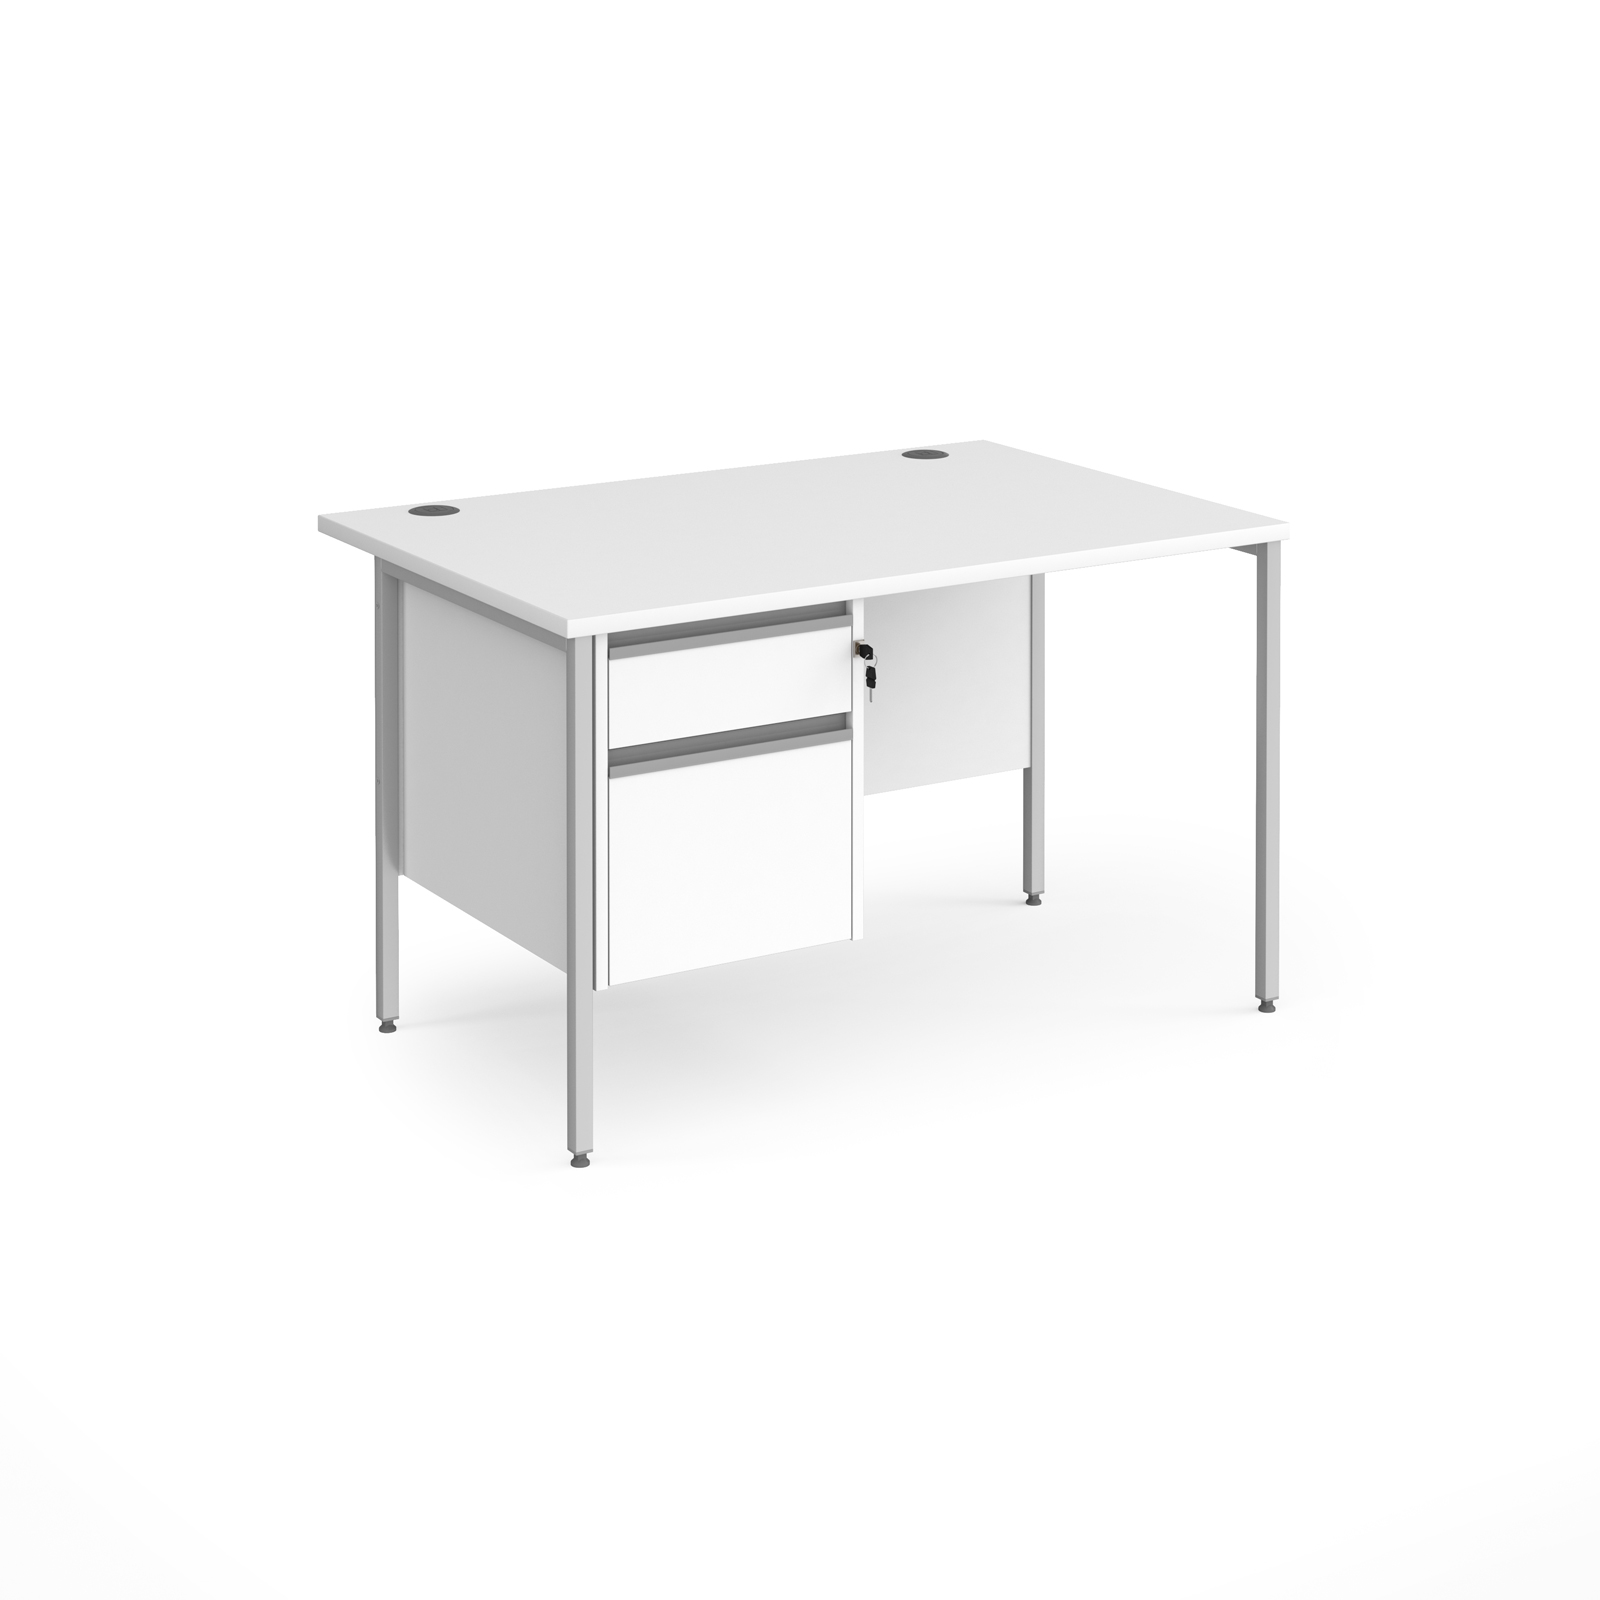 Rectangular Desks Contract 25 straight desk with 2 drawer pedestal and silver H-Frame leg 1200mm x 800mm - white top